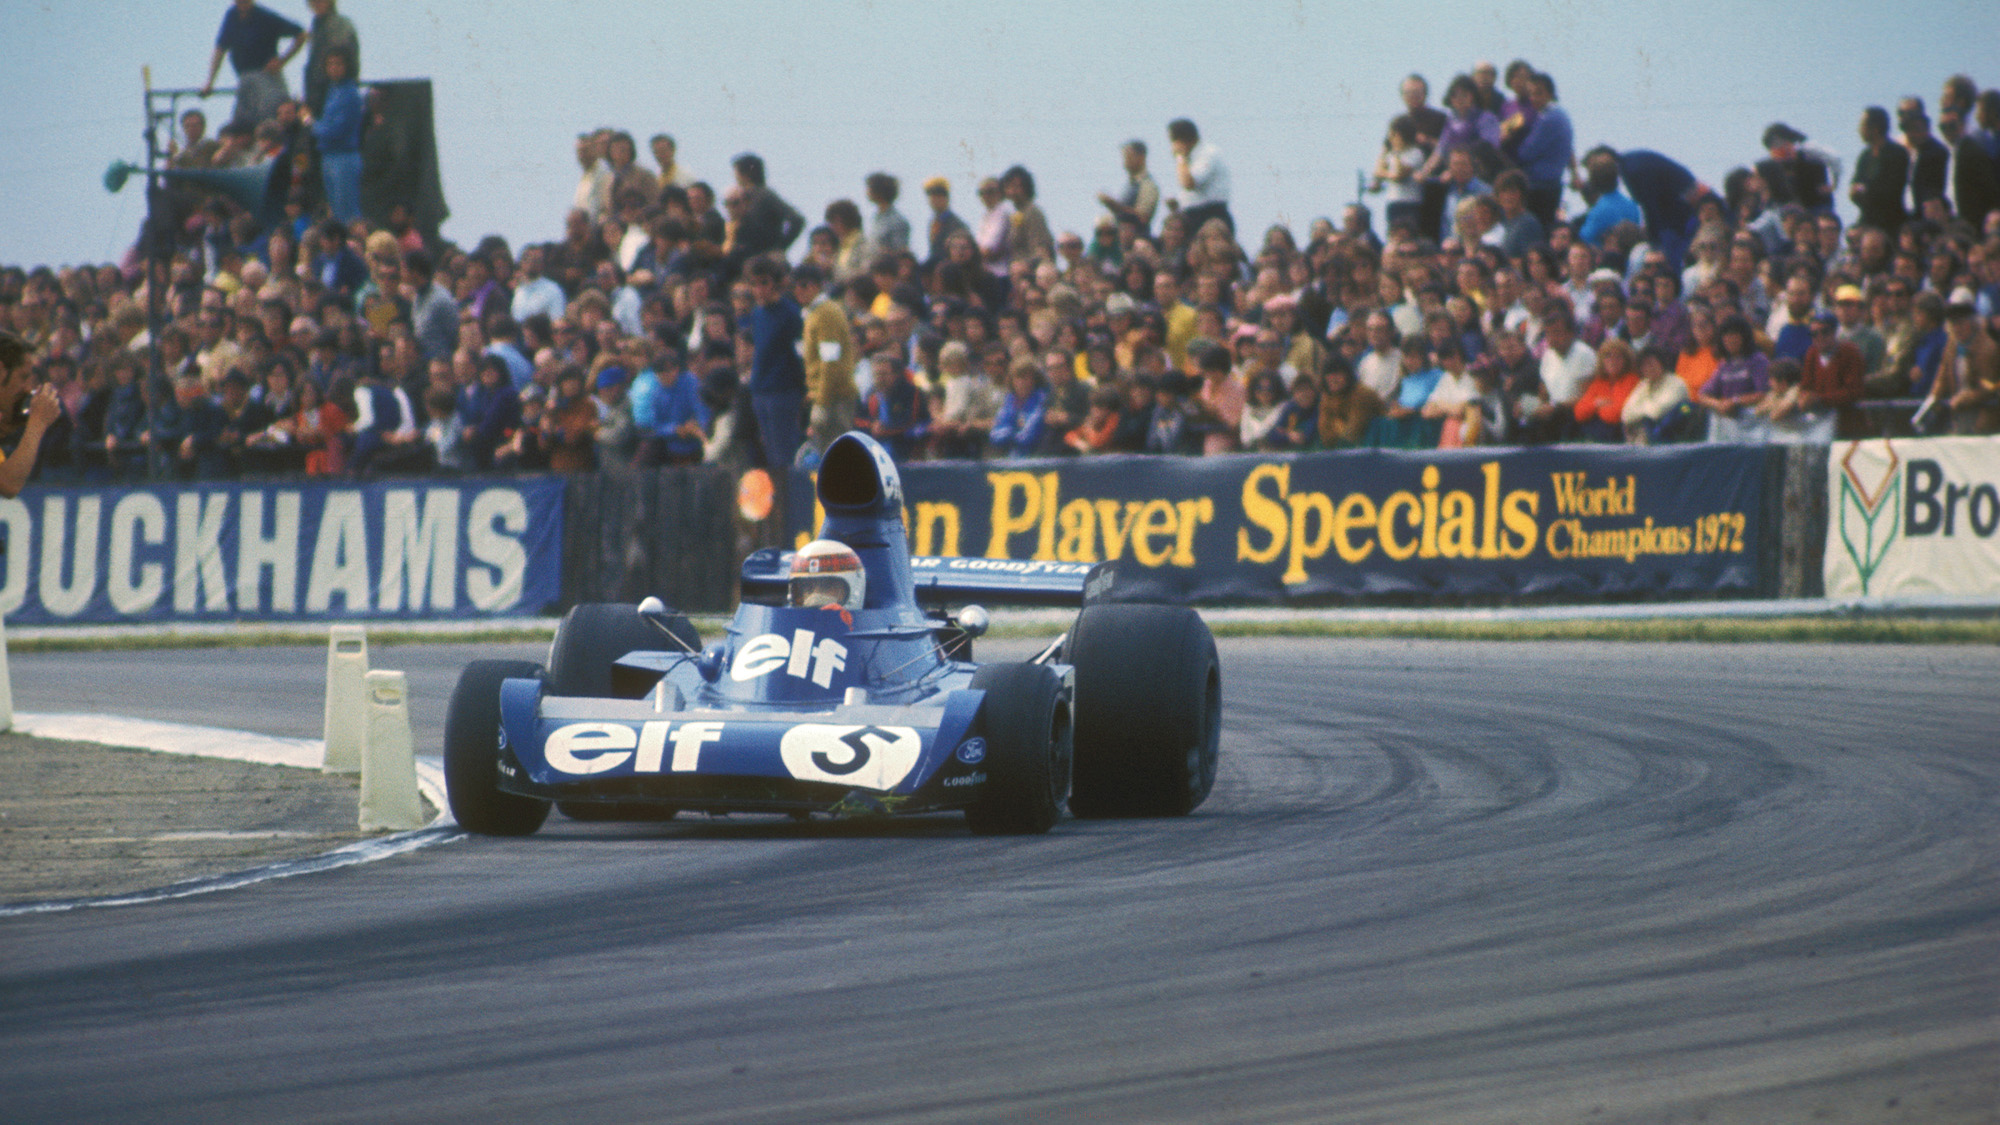 Jackie Stewart in his Tyrrell Ford during the 1973 British Grand Prix at Silverstone